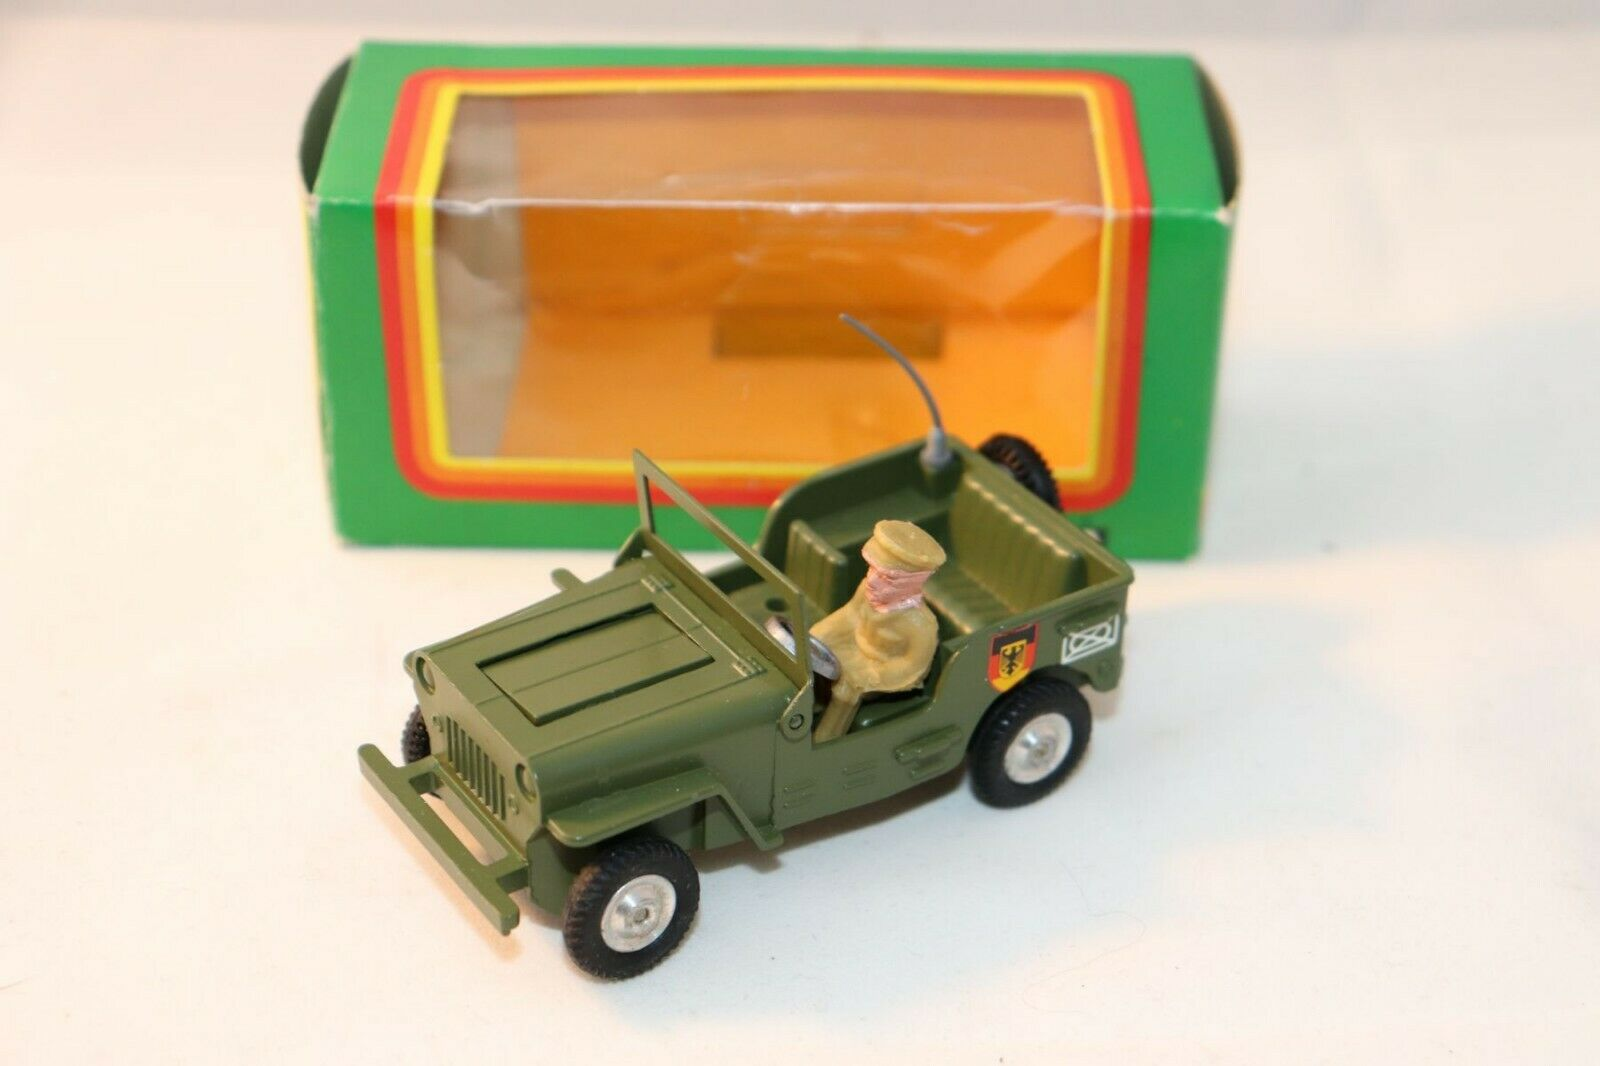 GAMA Mini 9034 7 Jeep with guns 1 43 mint in box original working condition